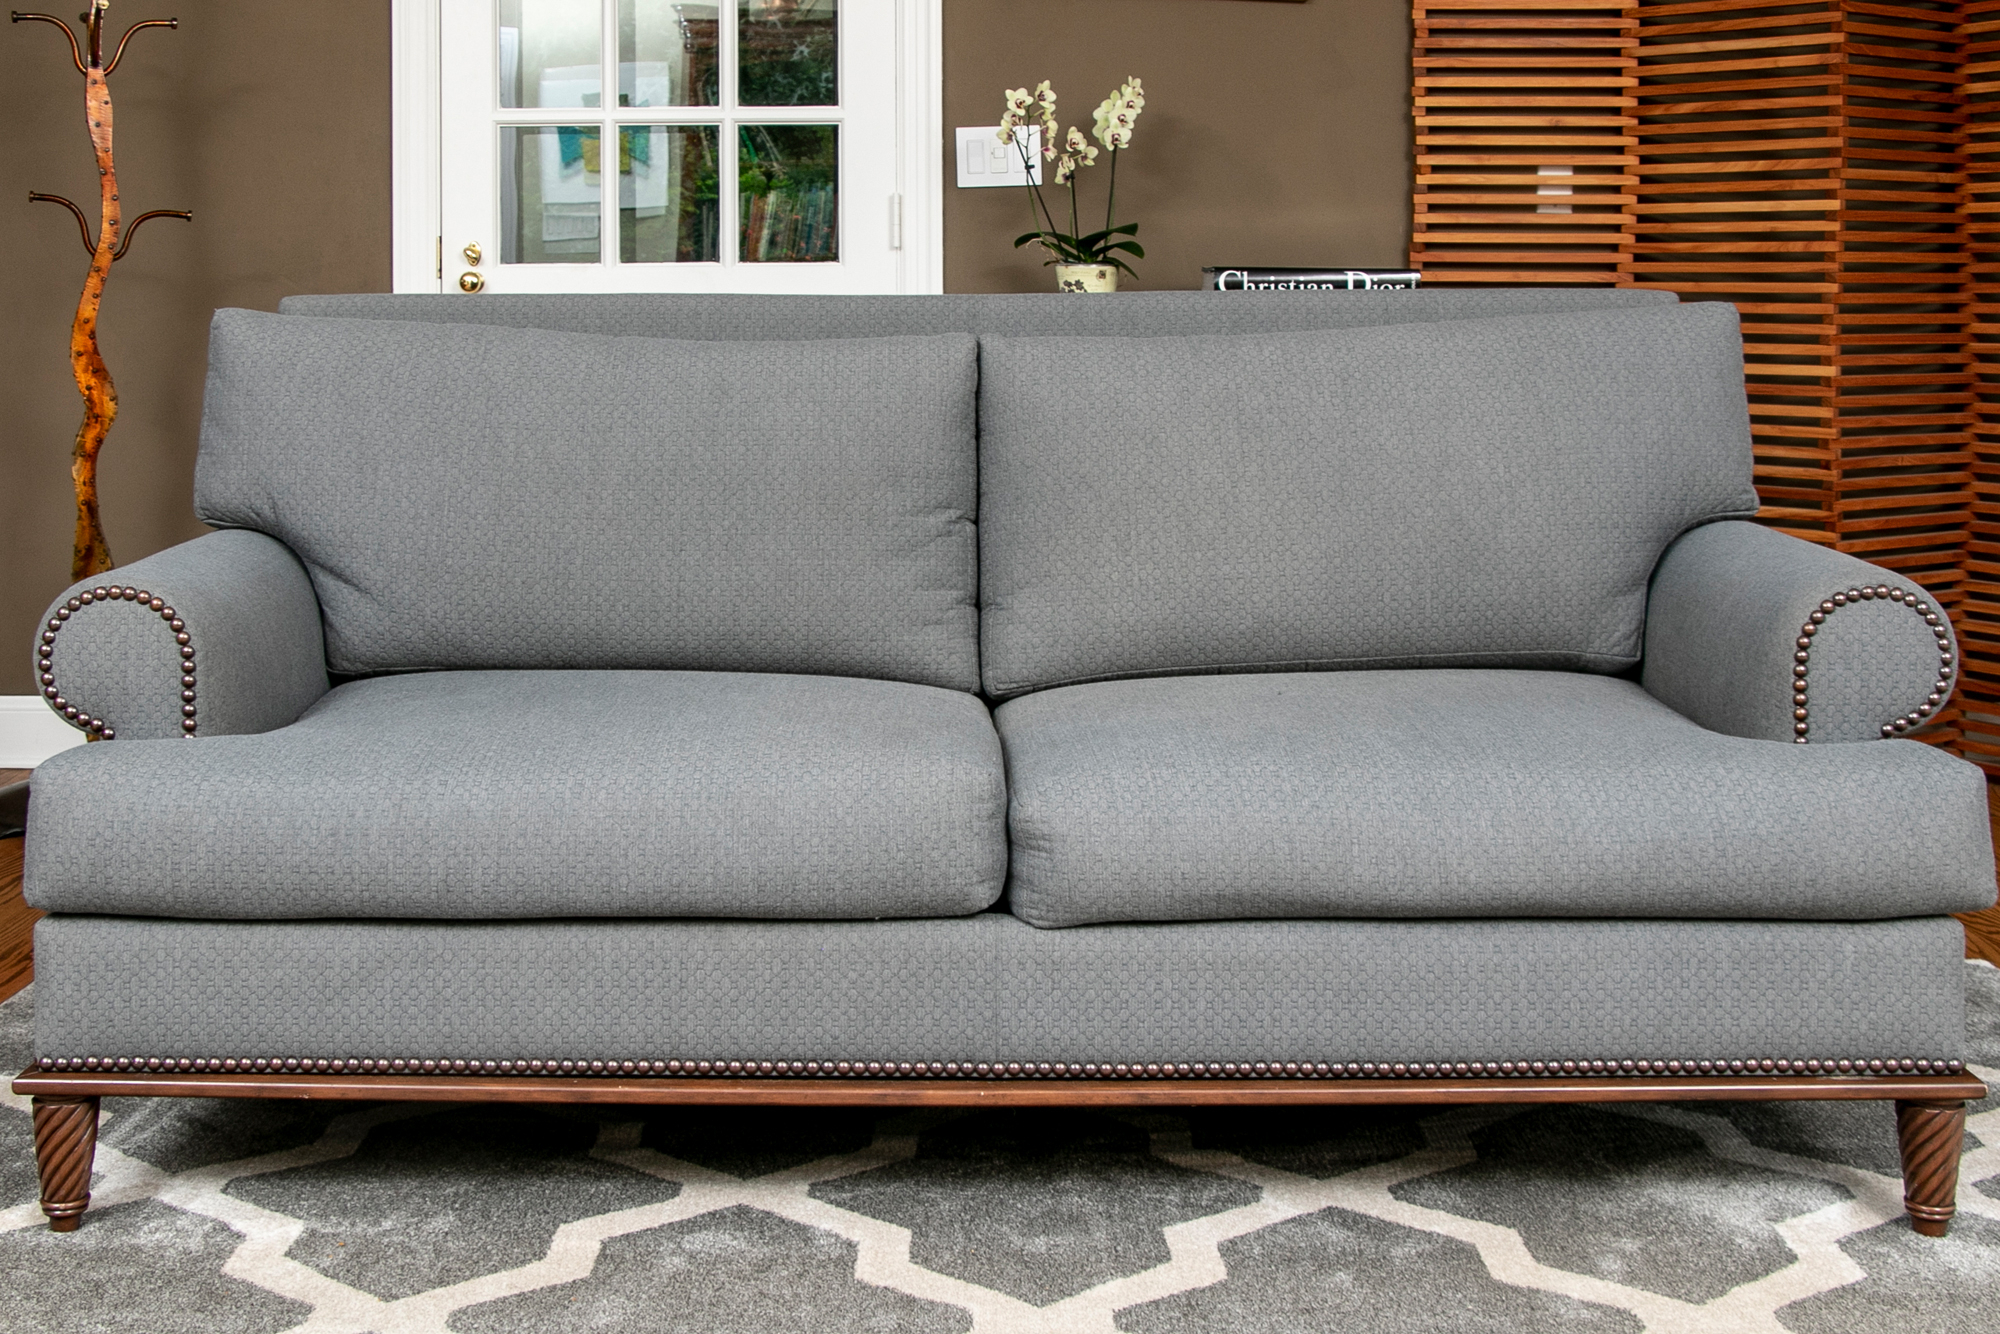 Beautiful Custom Grey Upholstered Rolled Armed Sofa With Regarding 2Pc Polyfiber Sectional Sofas With Nailhead Trims Gray (View 5 of 15)